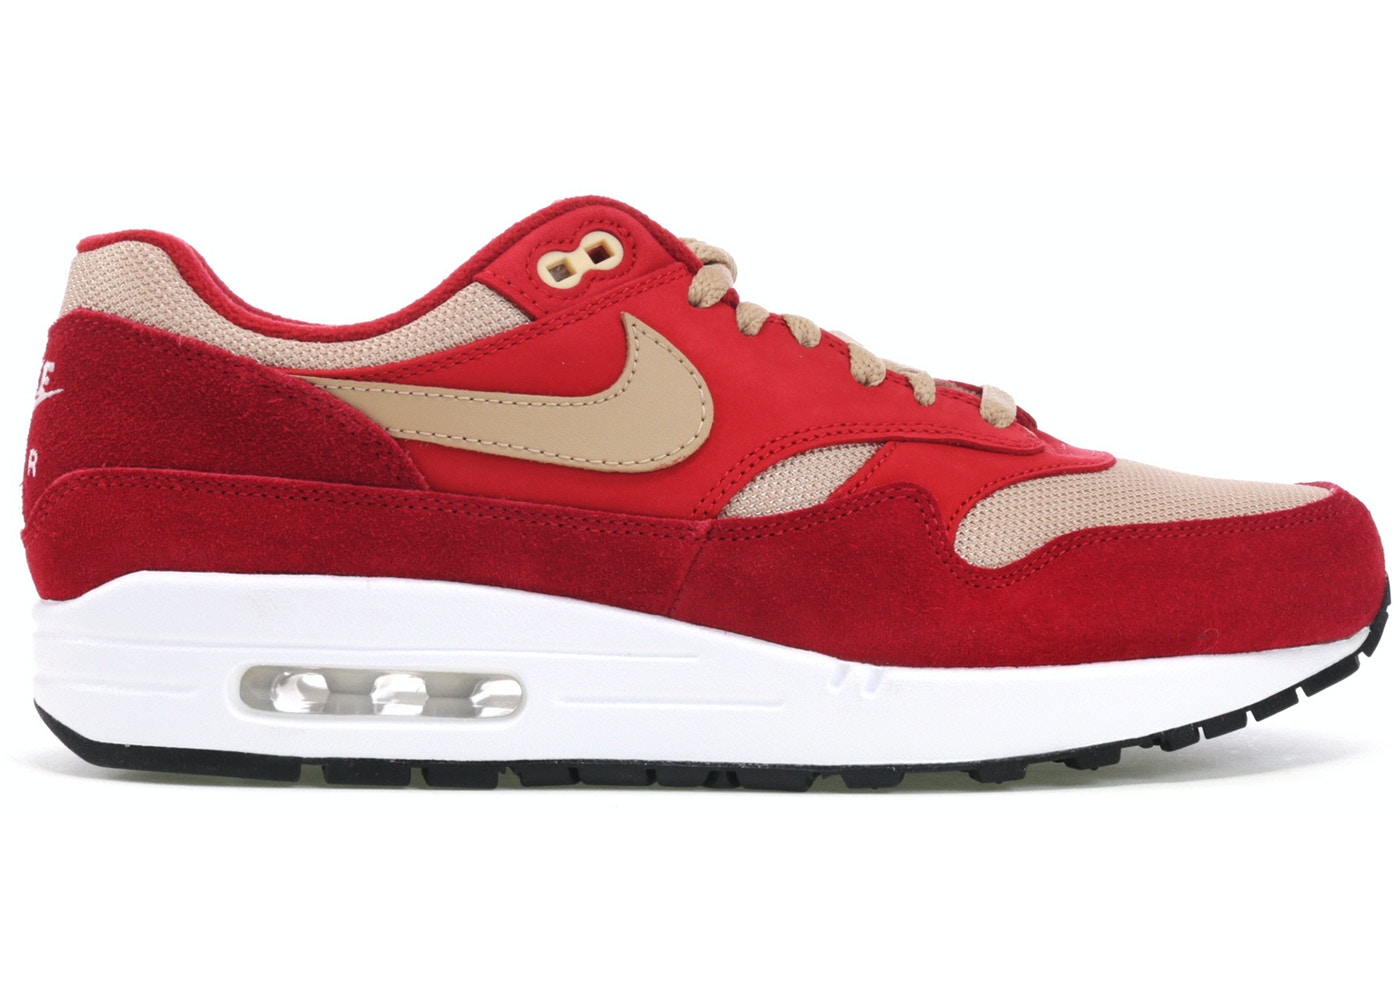 4c9741a7eb Air Max 1 Curry Pack (Red) - 908366-600